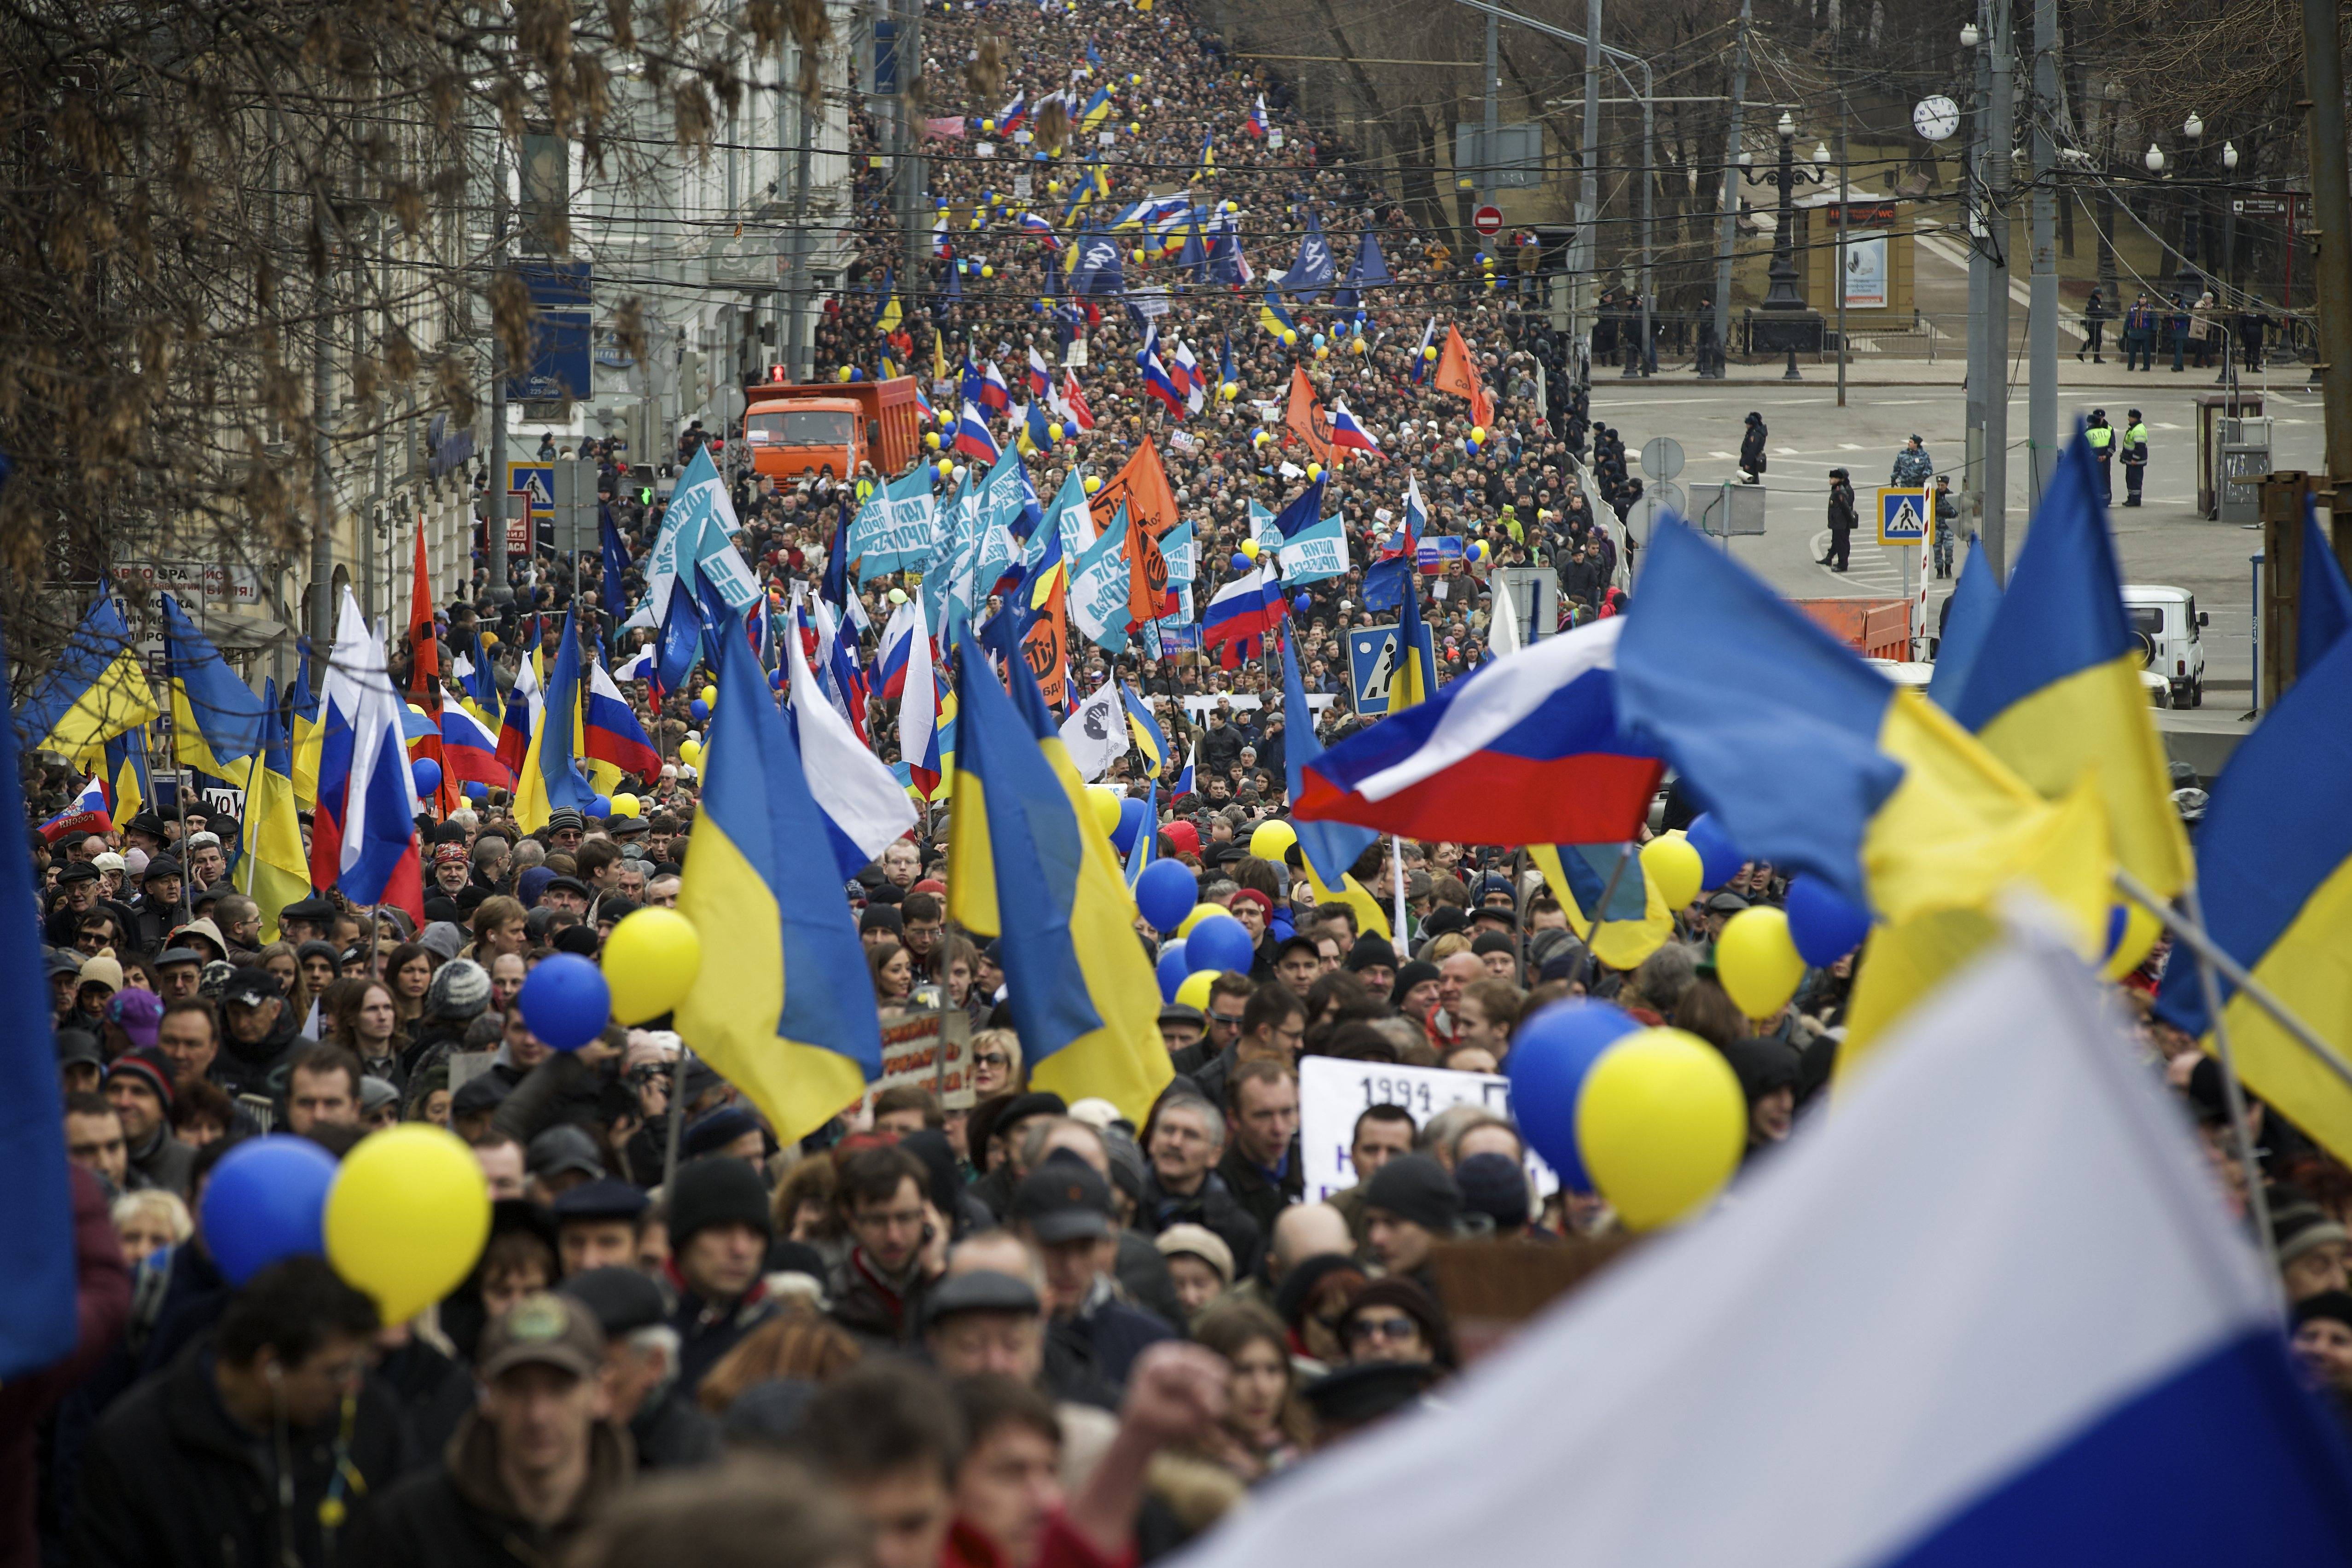 Thousands march in Moscow to protest Crimea